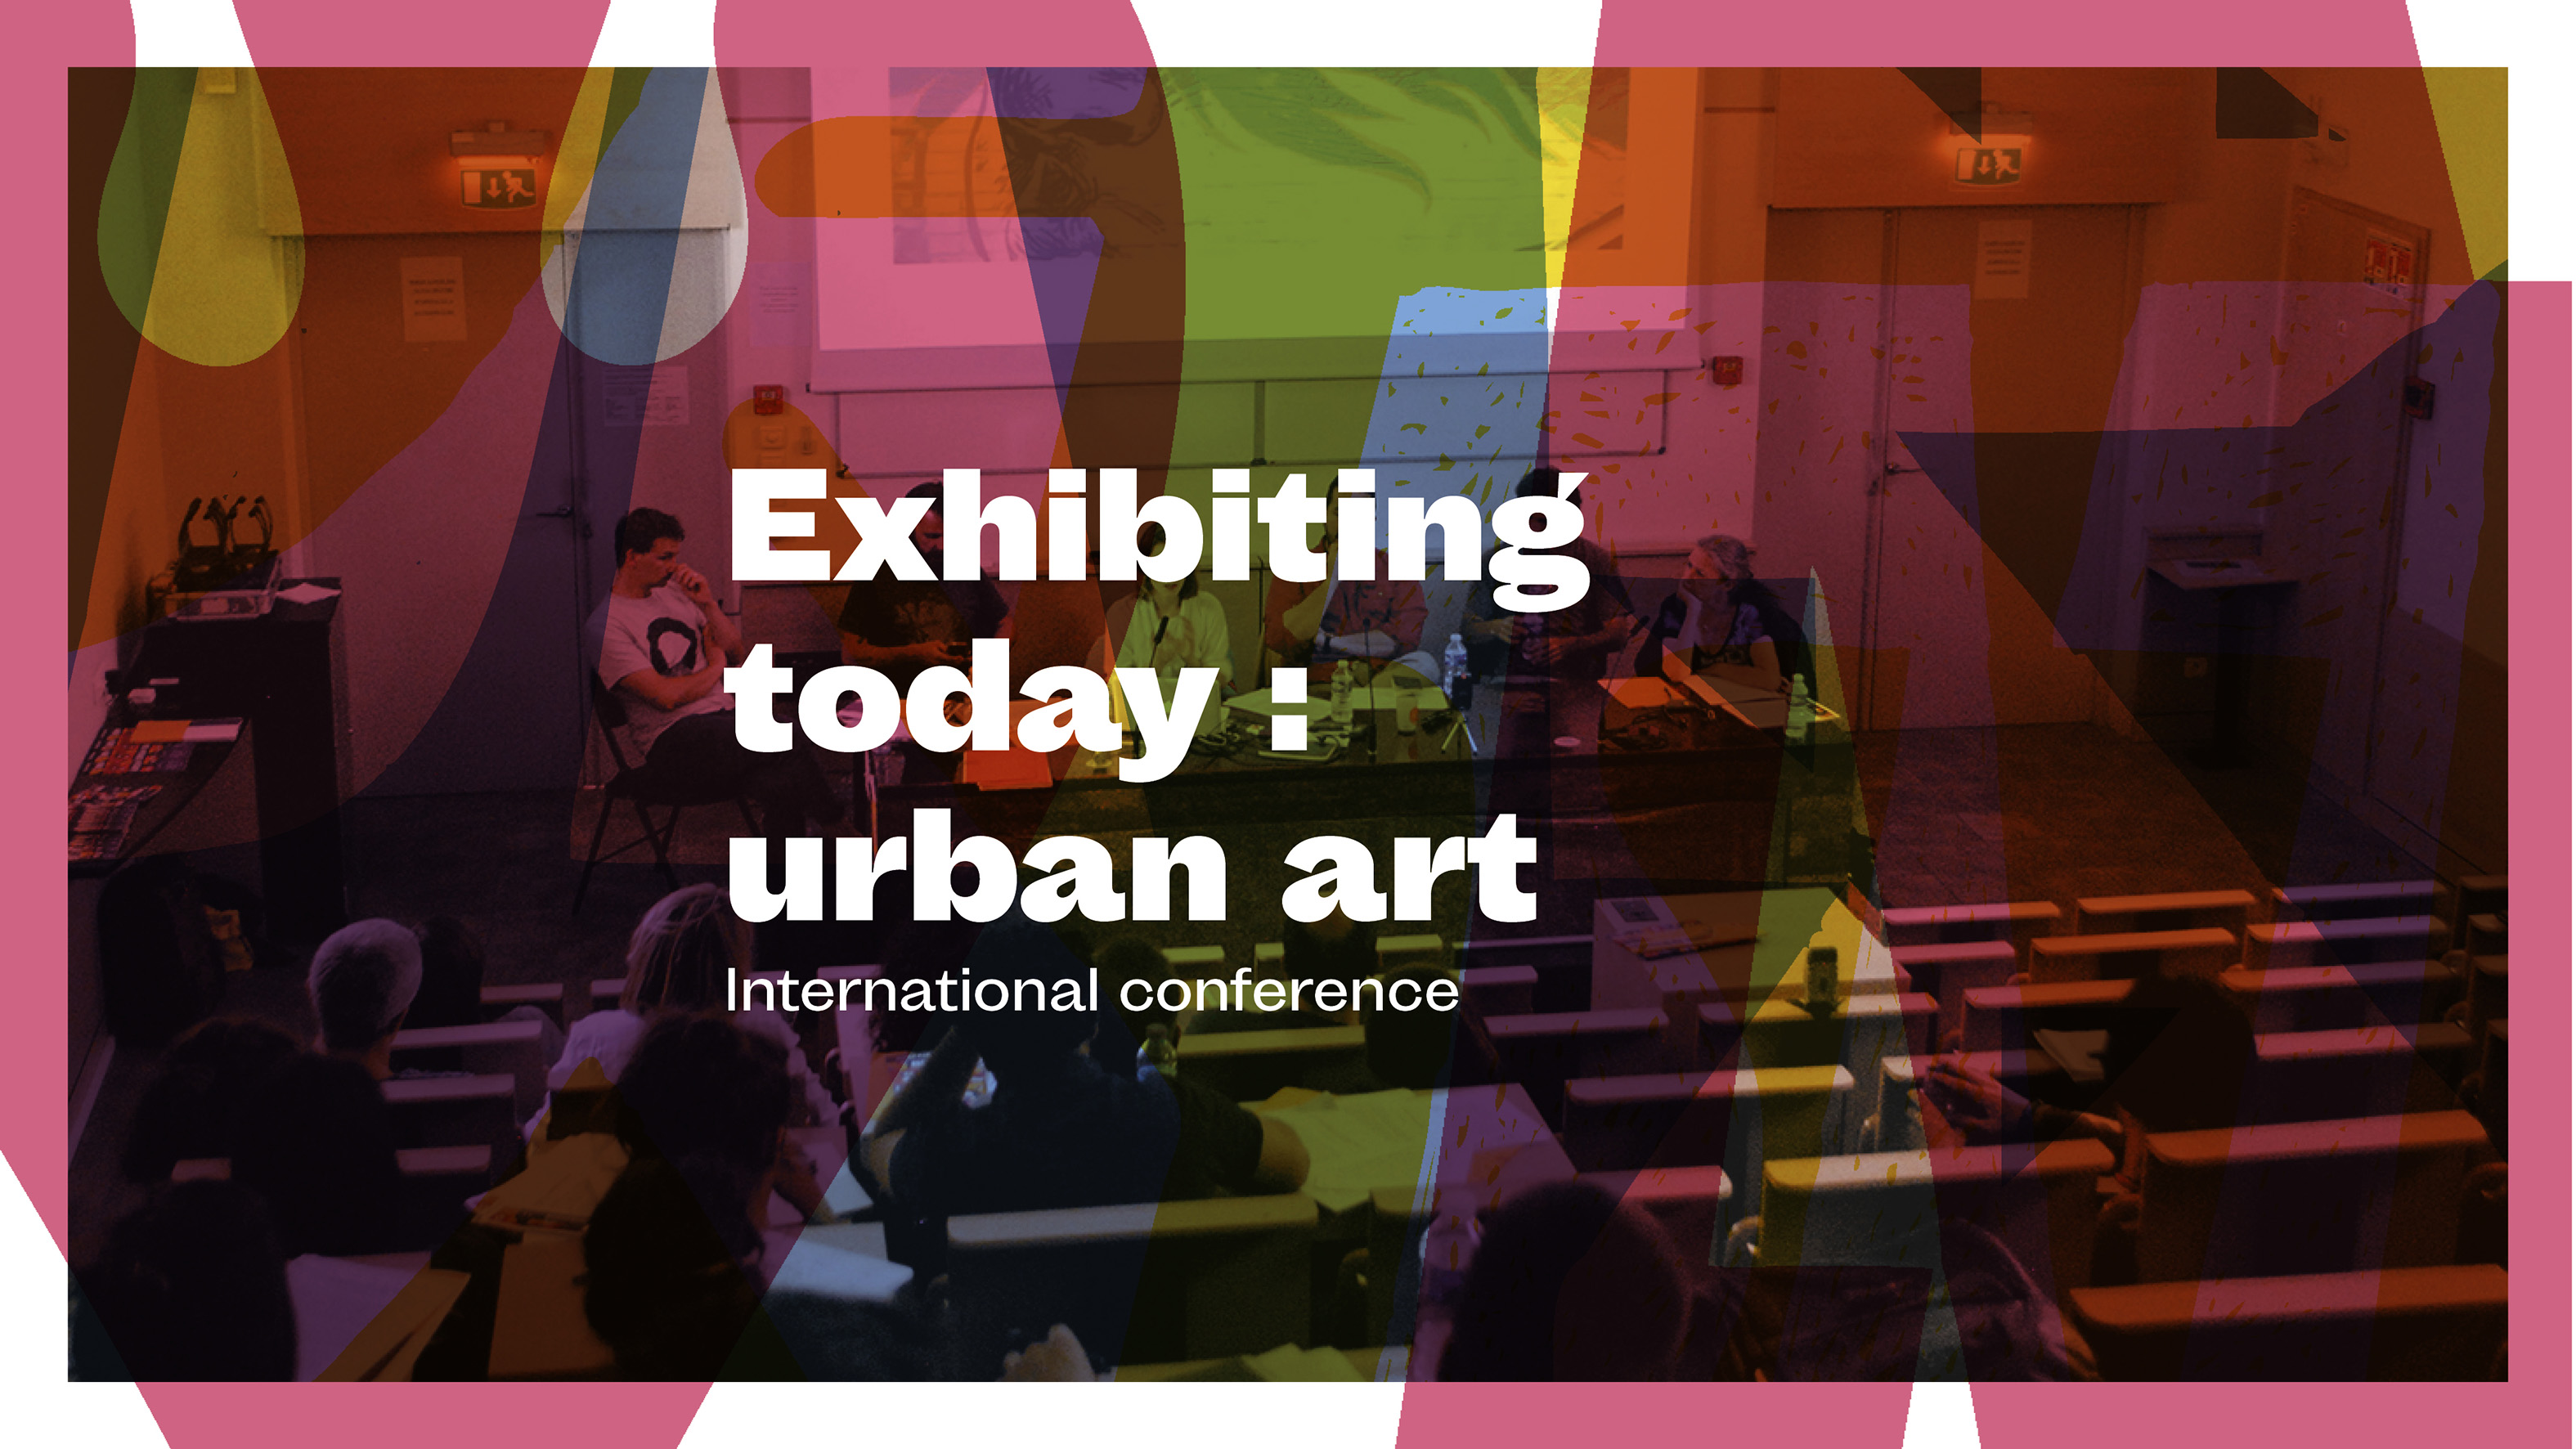 Exhibiting today : urban art – International conference